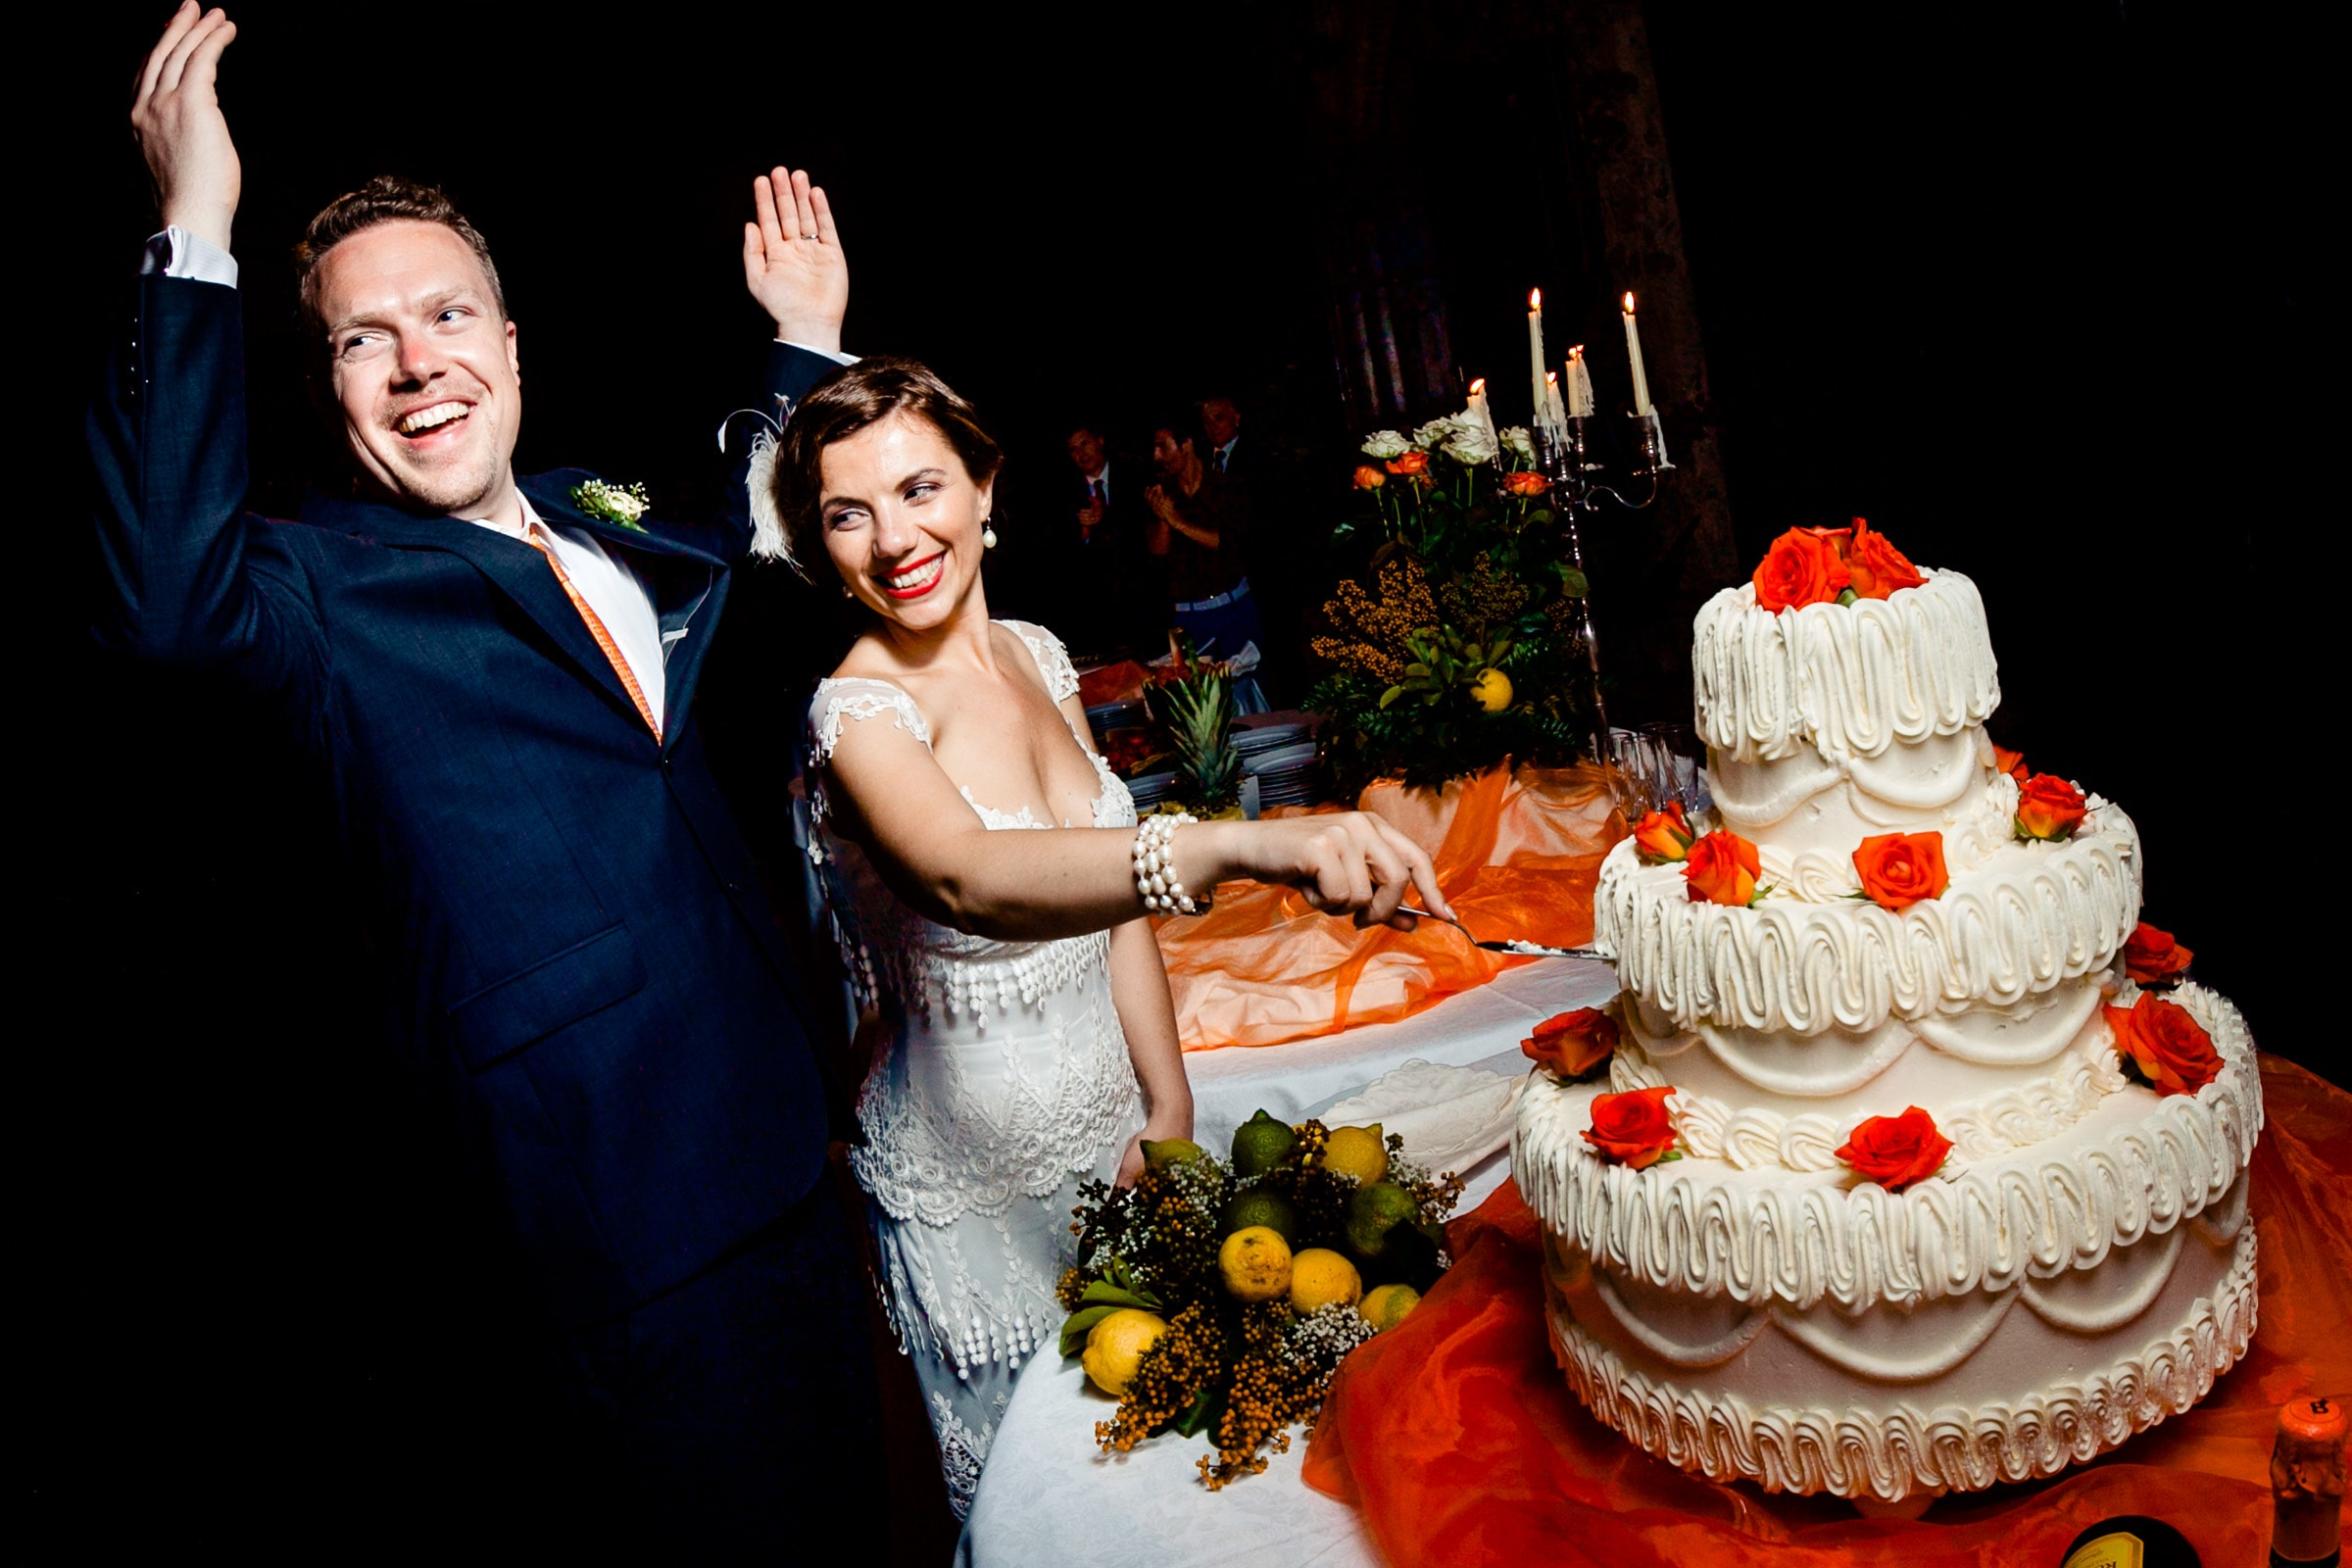 Bride and groom cutting epic Sicily wedding cake during their wedding reception at Parco Museo Jalari